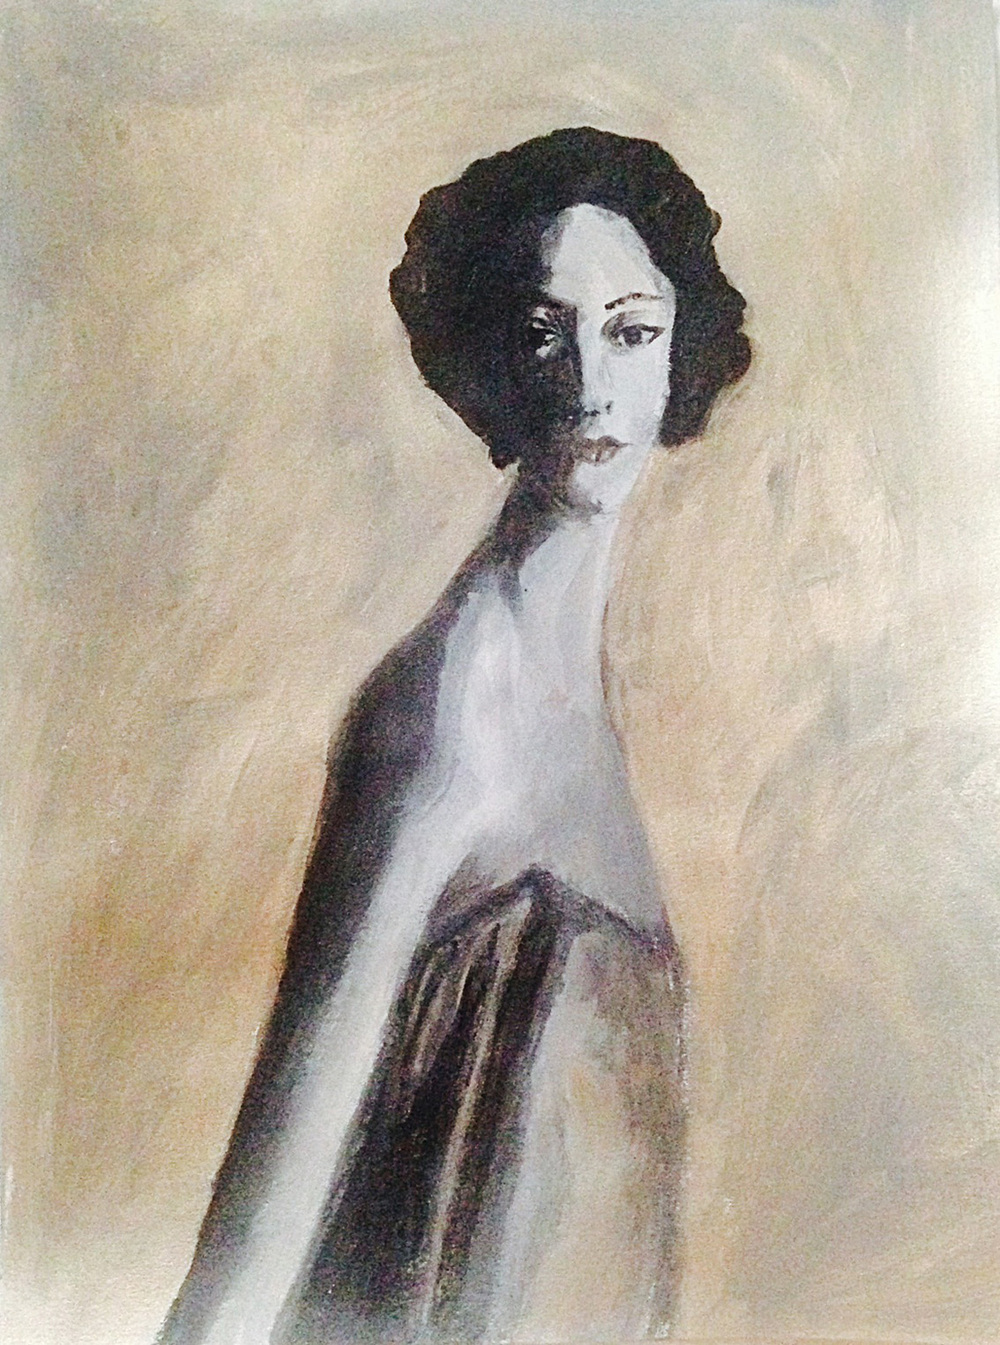 My version of Marella Agnelli